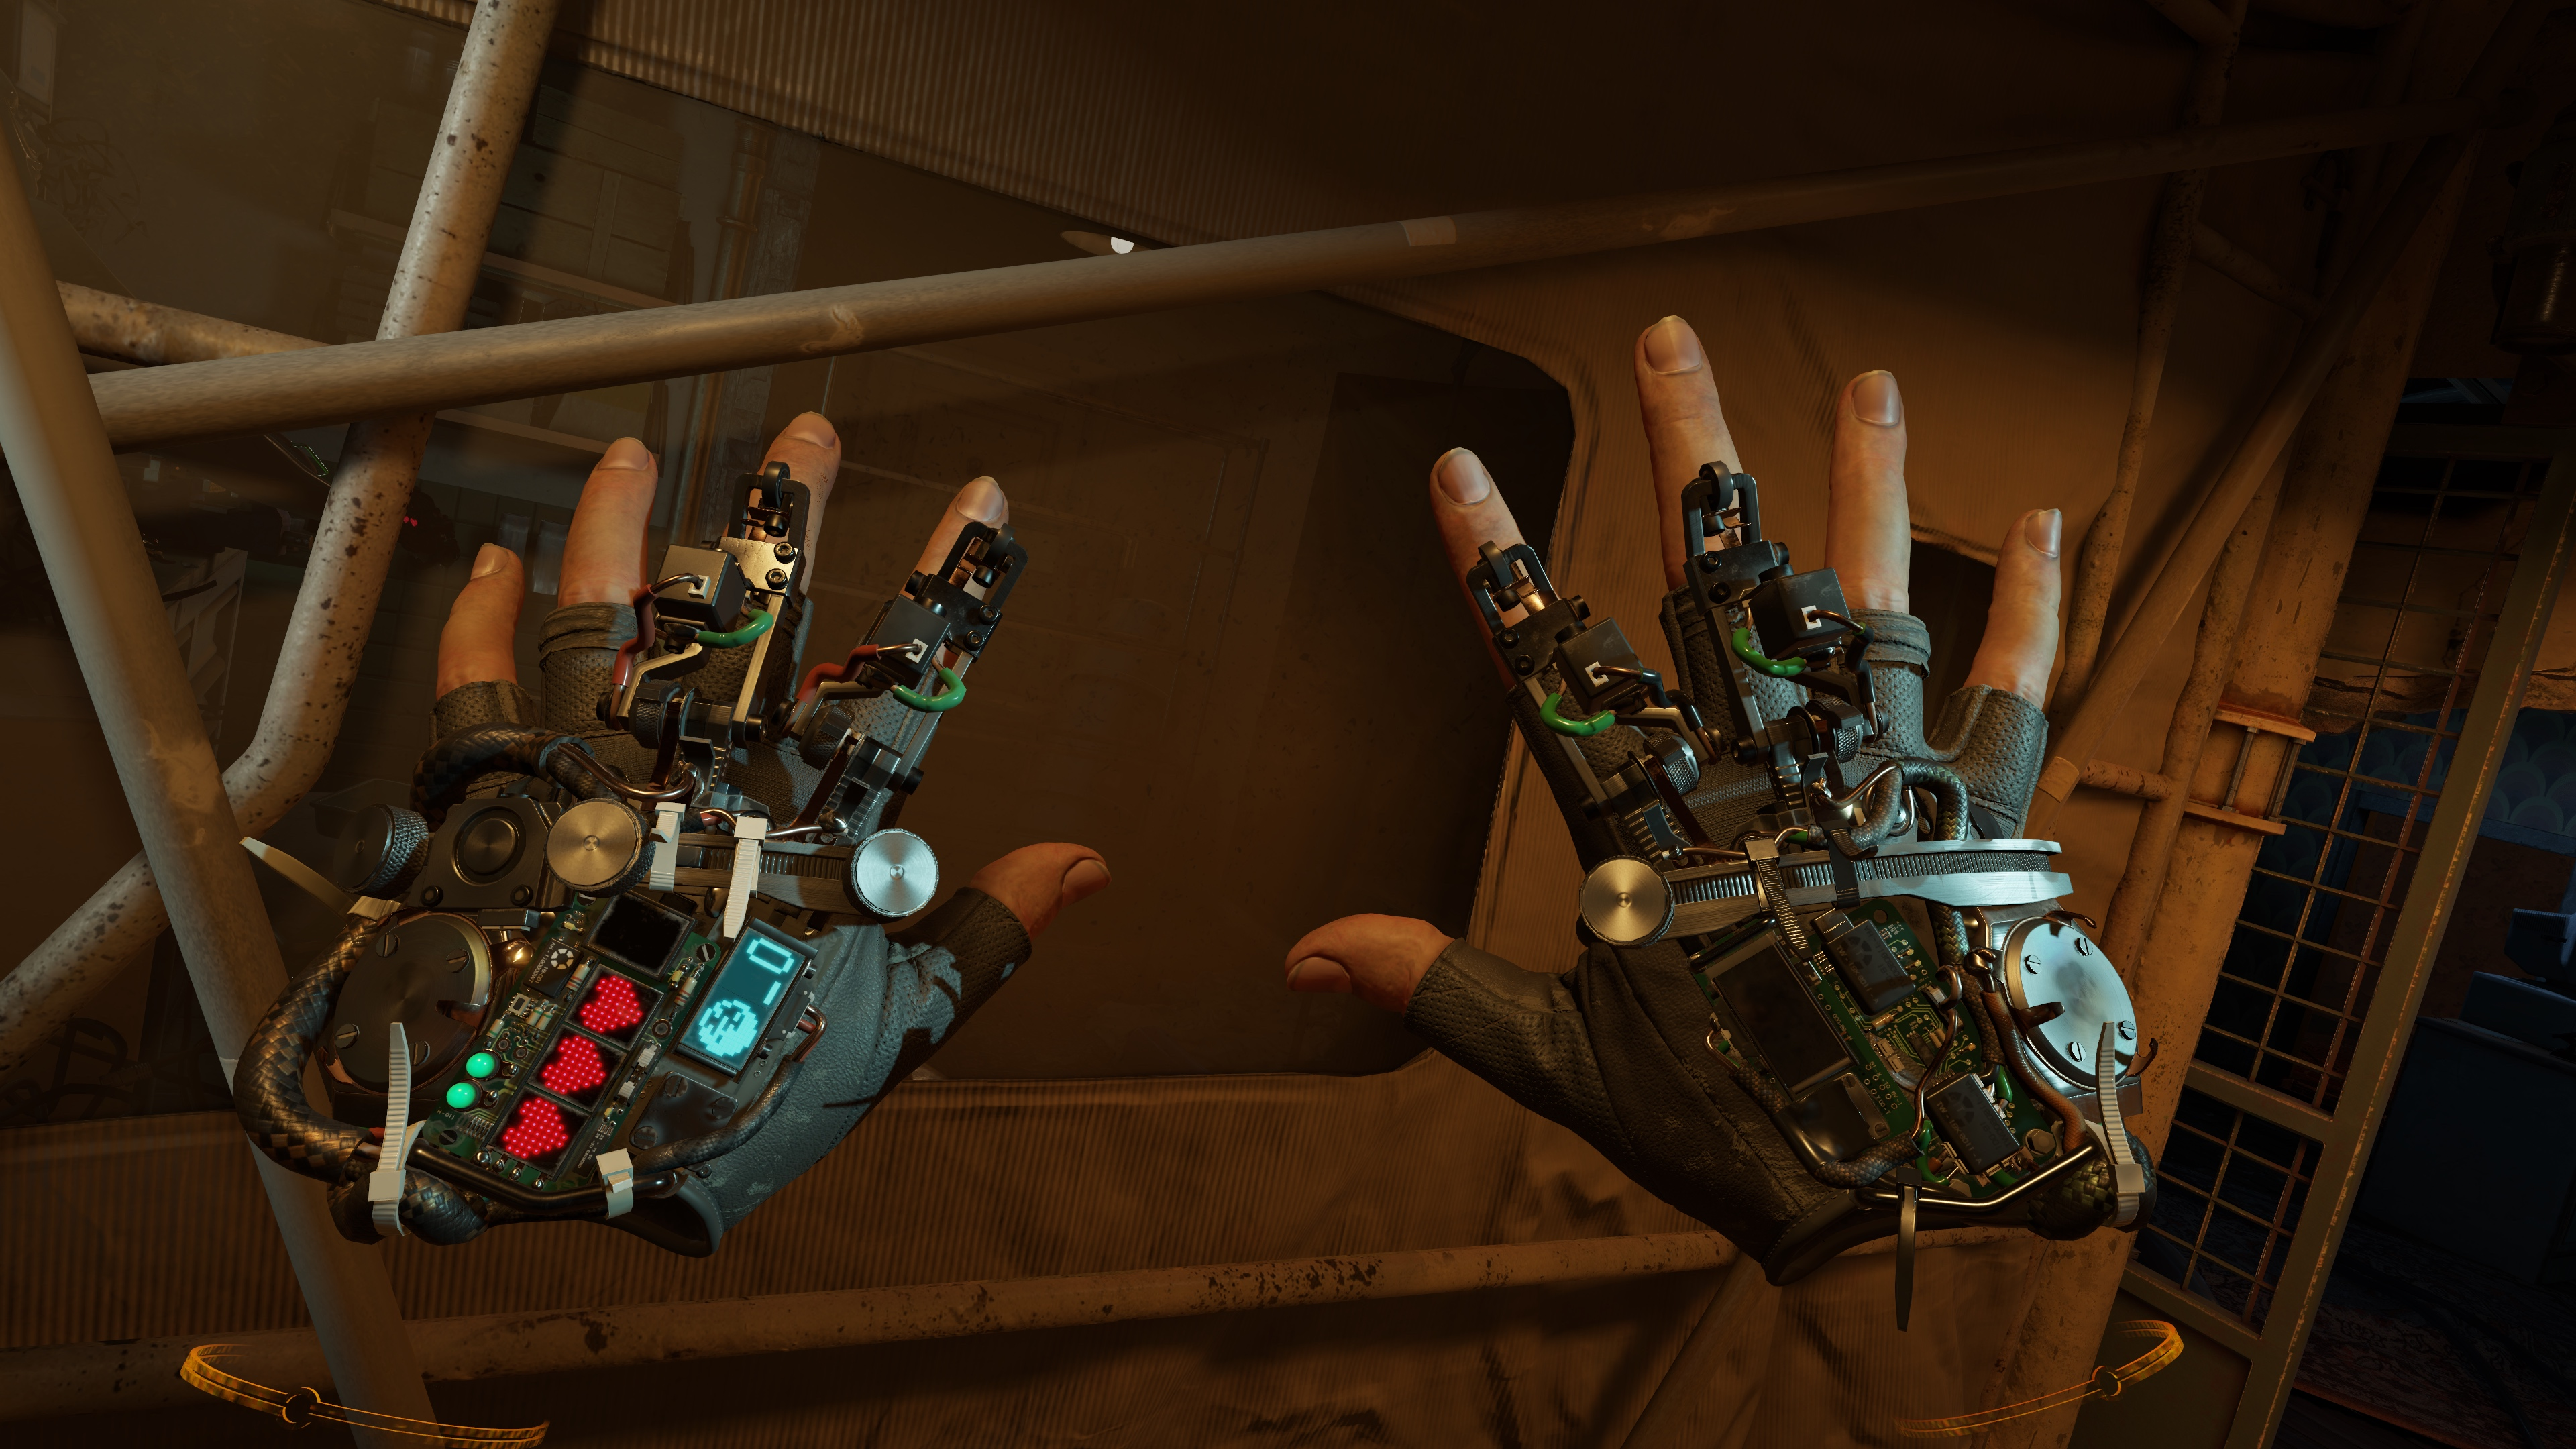 A first-person view of hands wearing Gravity Gloves in a screenshot from Half-Life: Alyx.